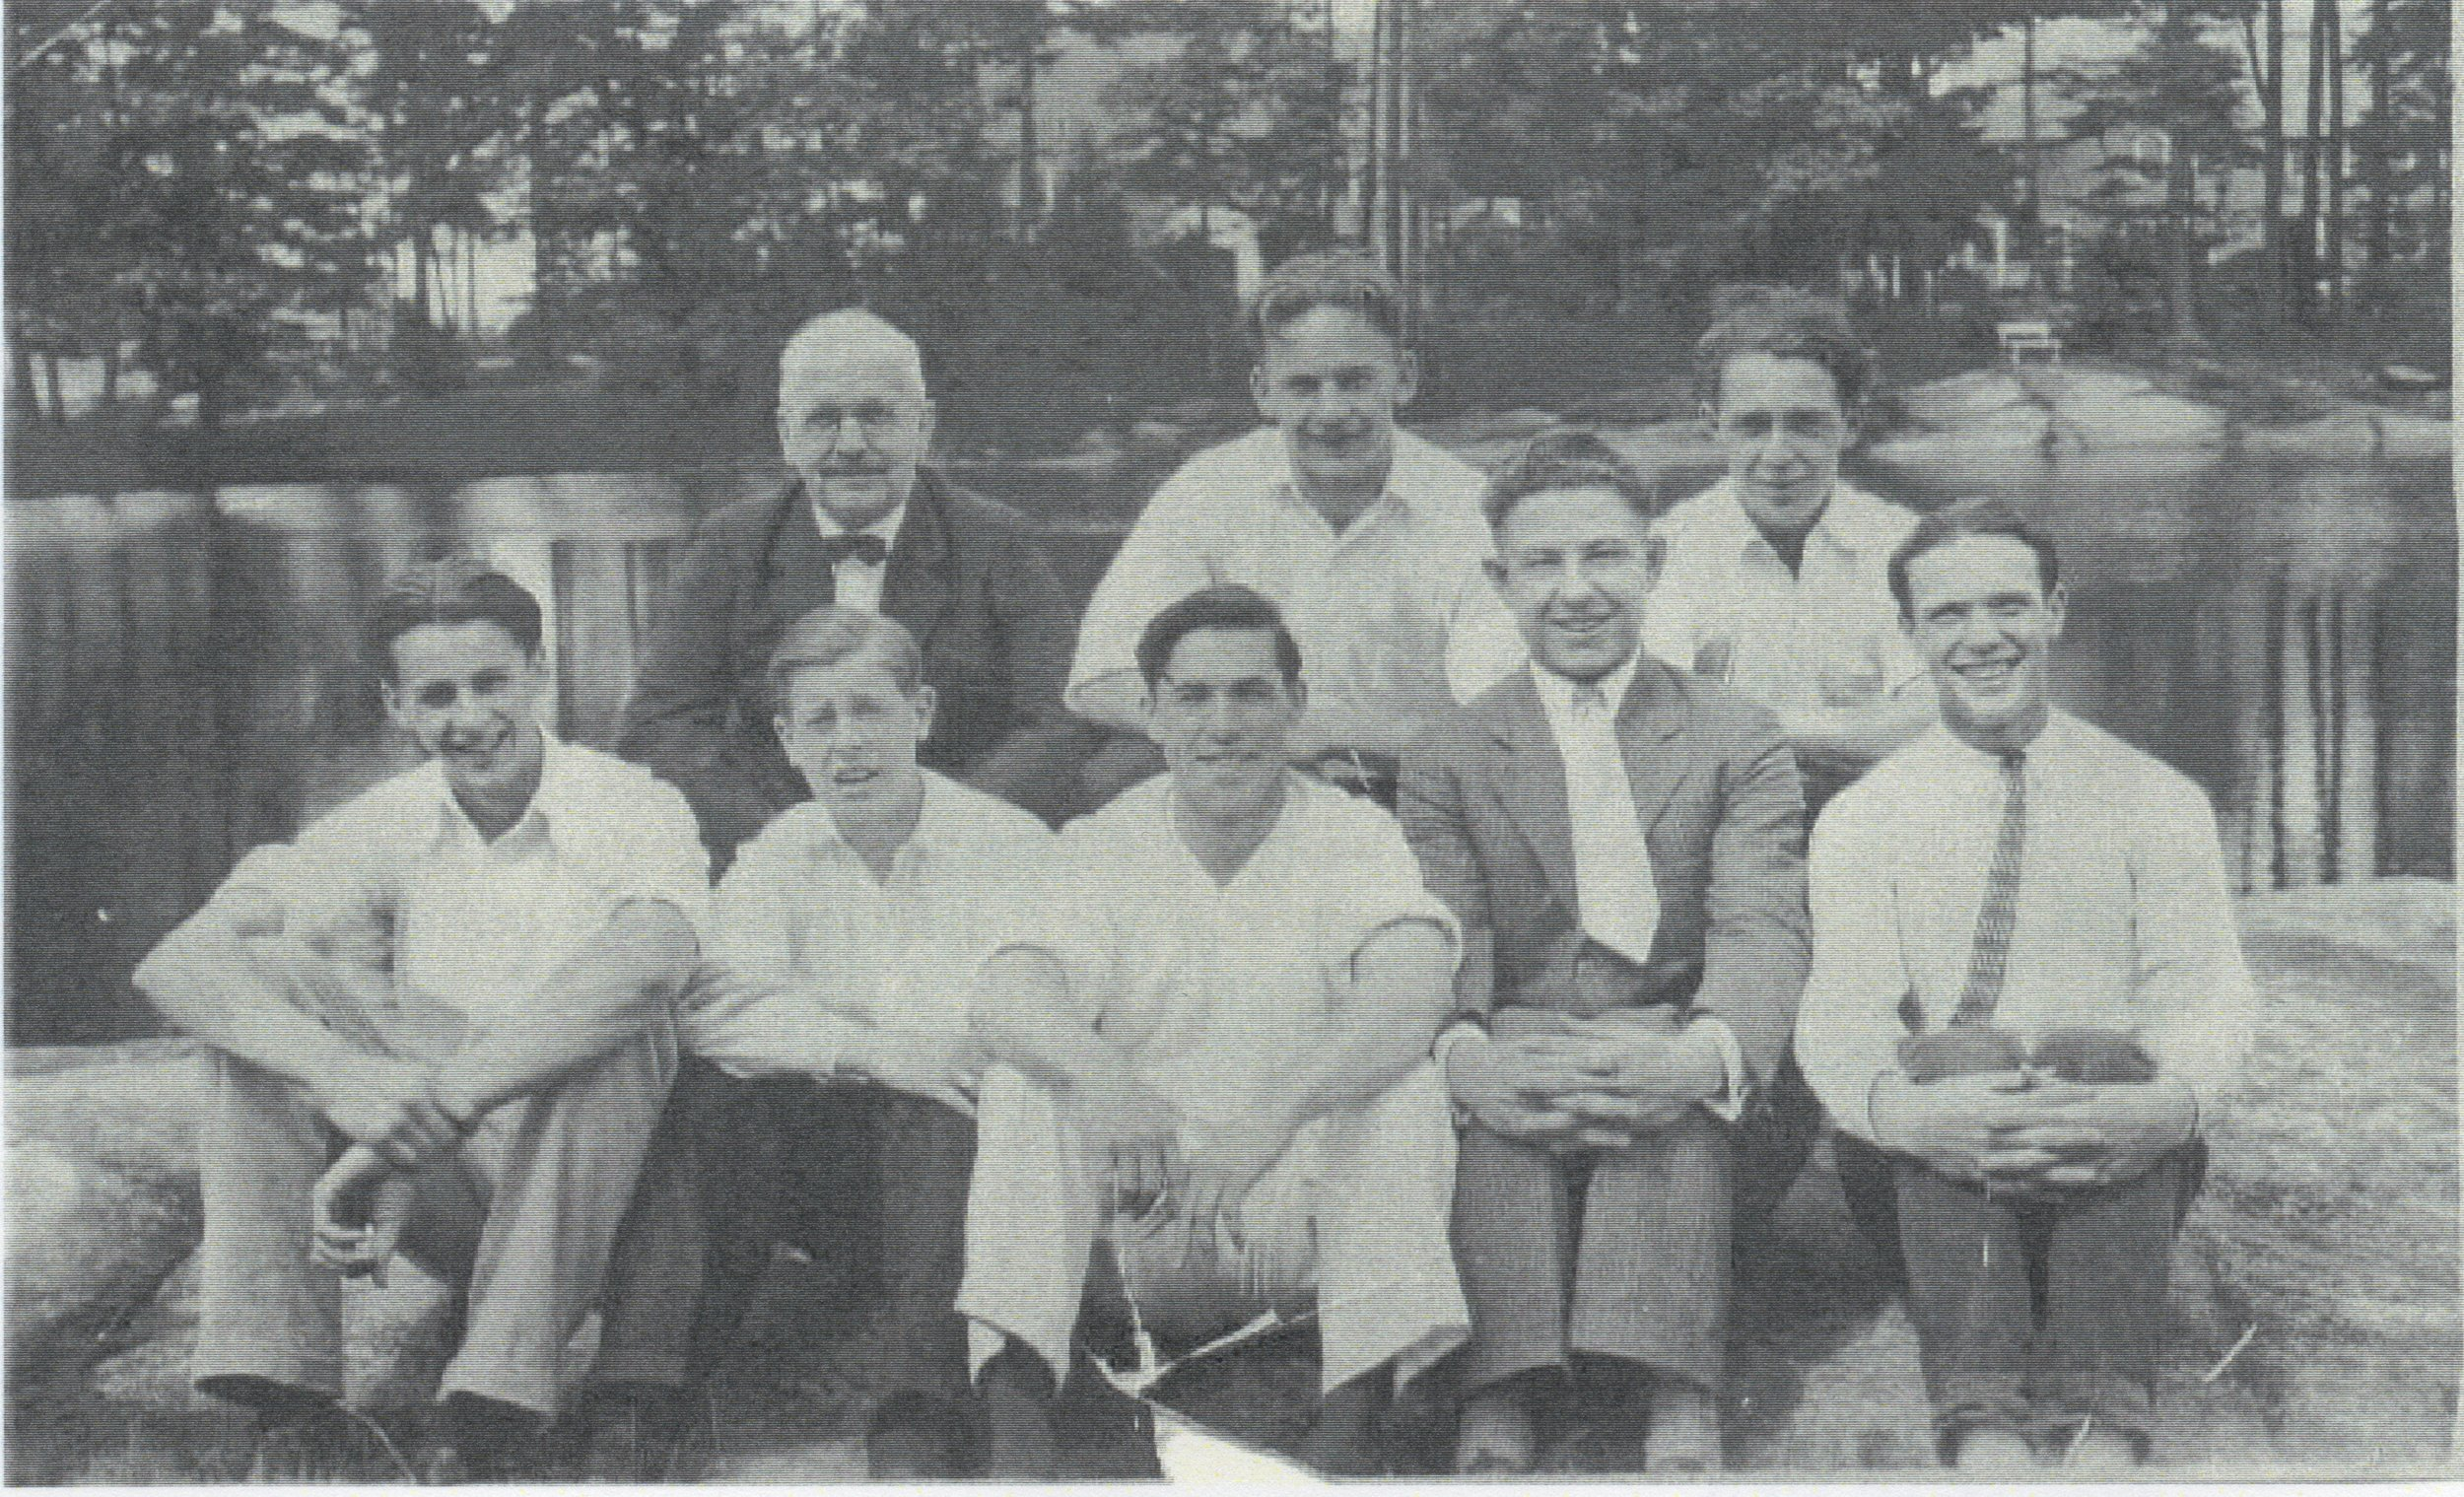 ca. 1928 Mt. McGregor lunch- Ken Petteys (front row, 2nd from right)